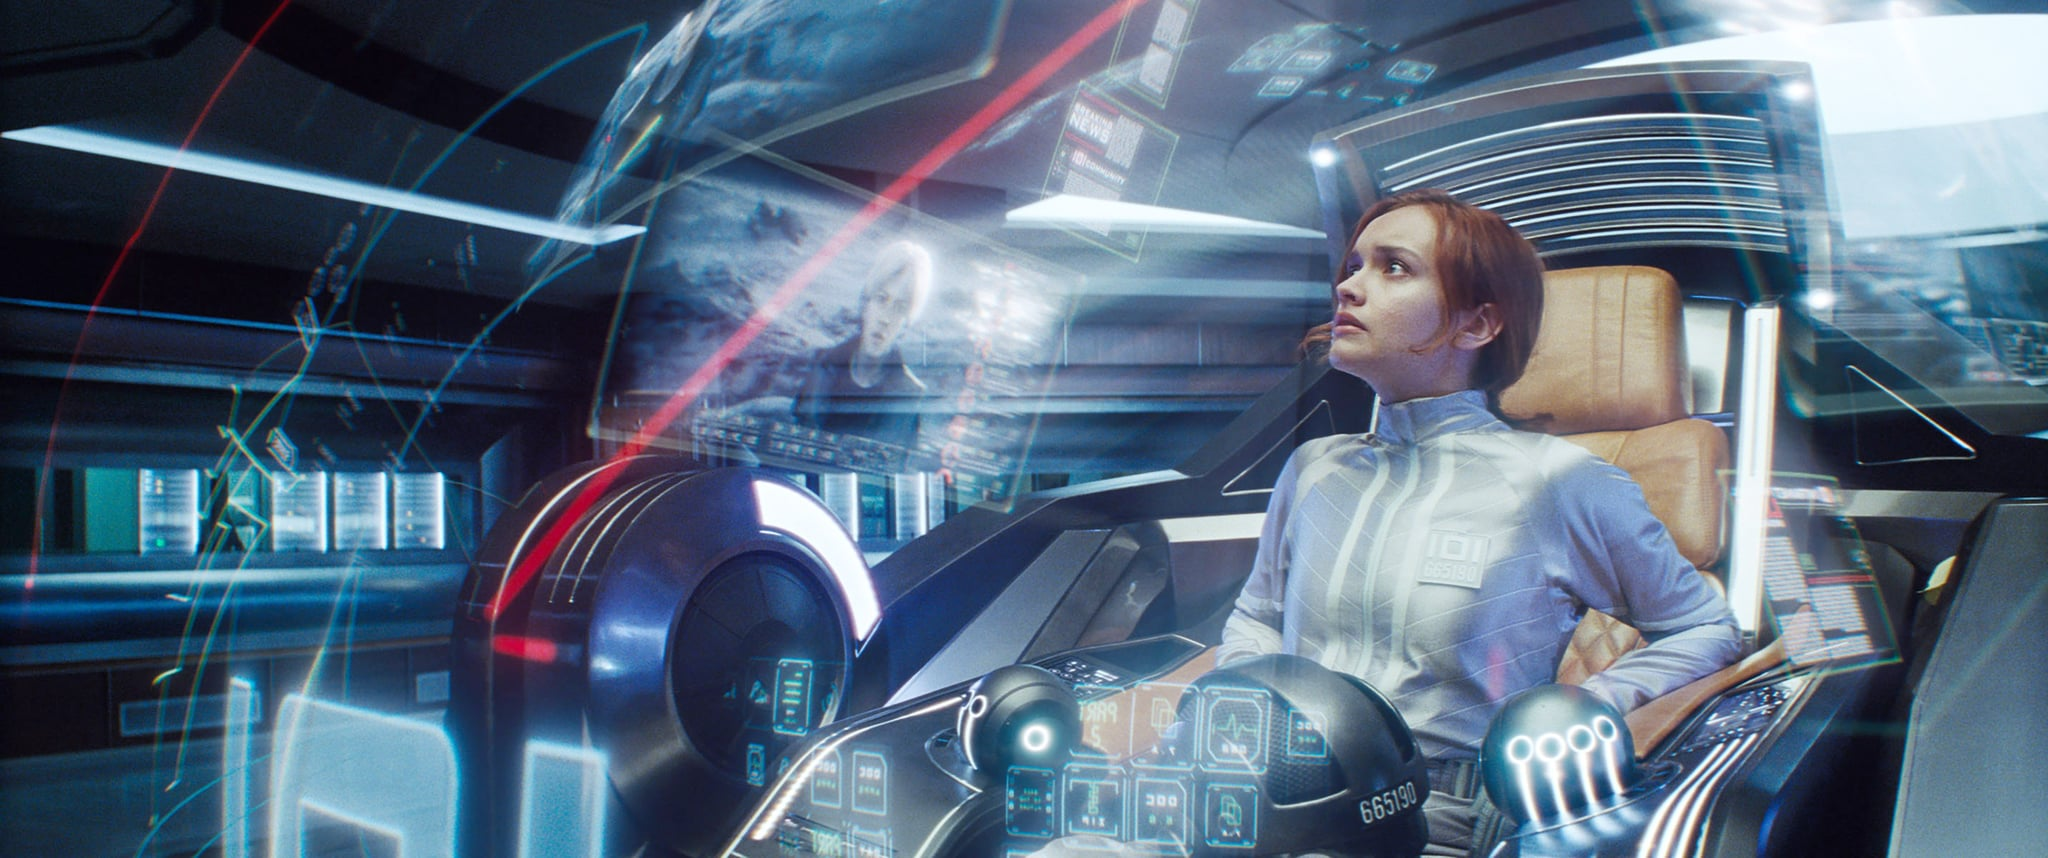 READY PLAYER ONE, Olivia Cooke, 2018.  Warner Bros. Pictures/Courtesy Everett Collection